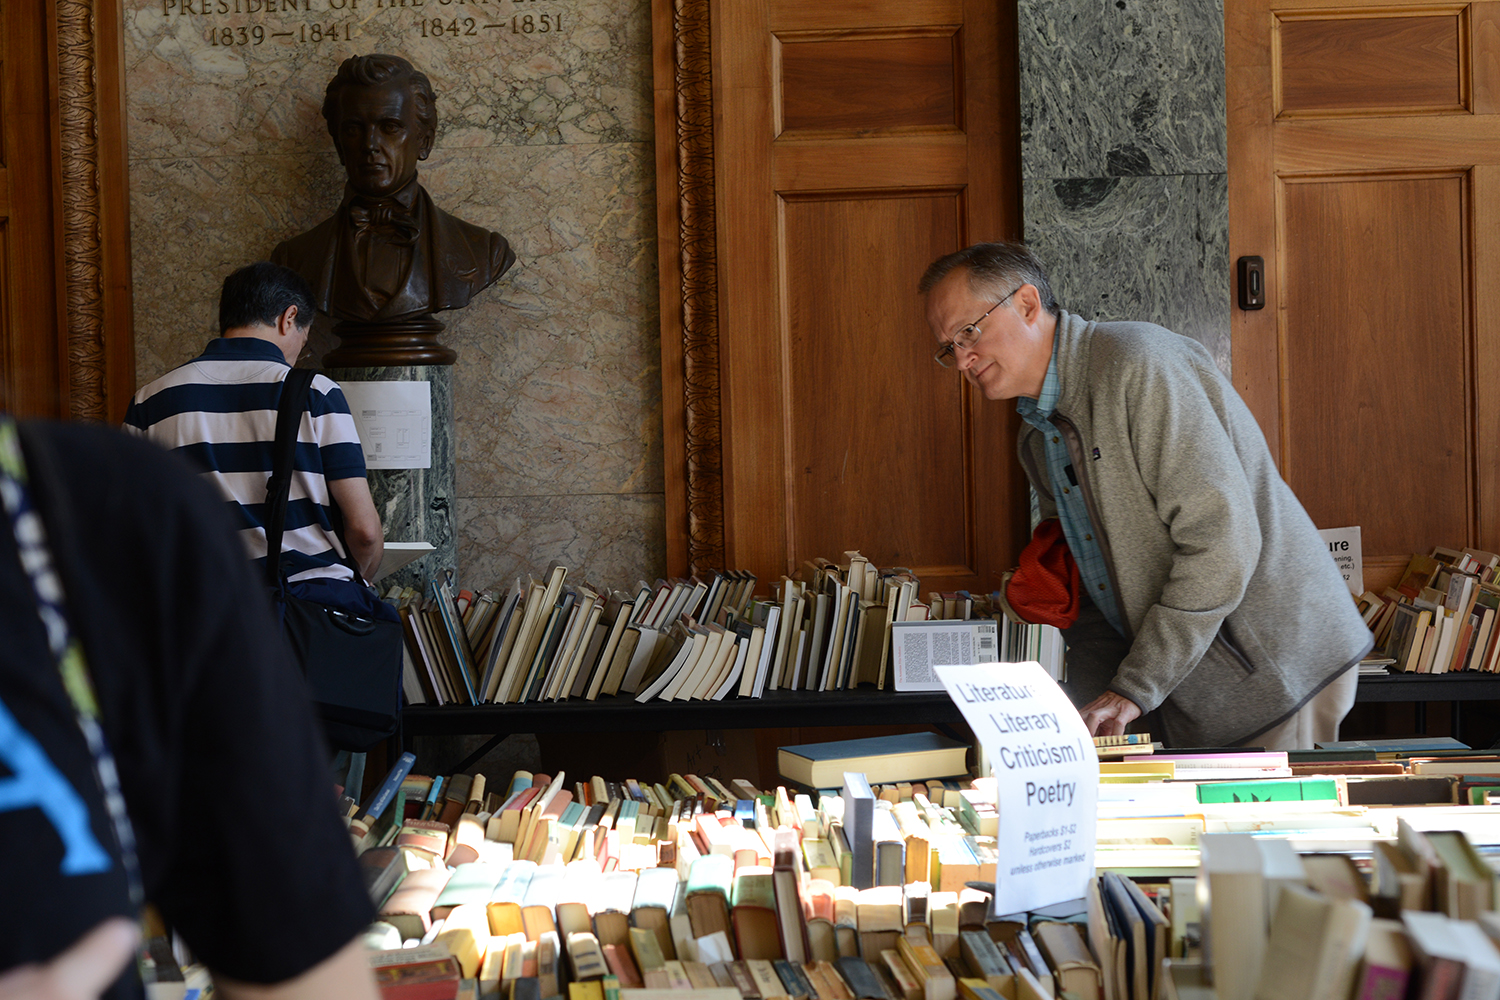 More than 3,000 books were for sale, most priced between $1-$5.